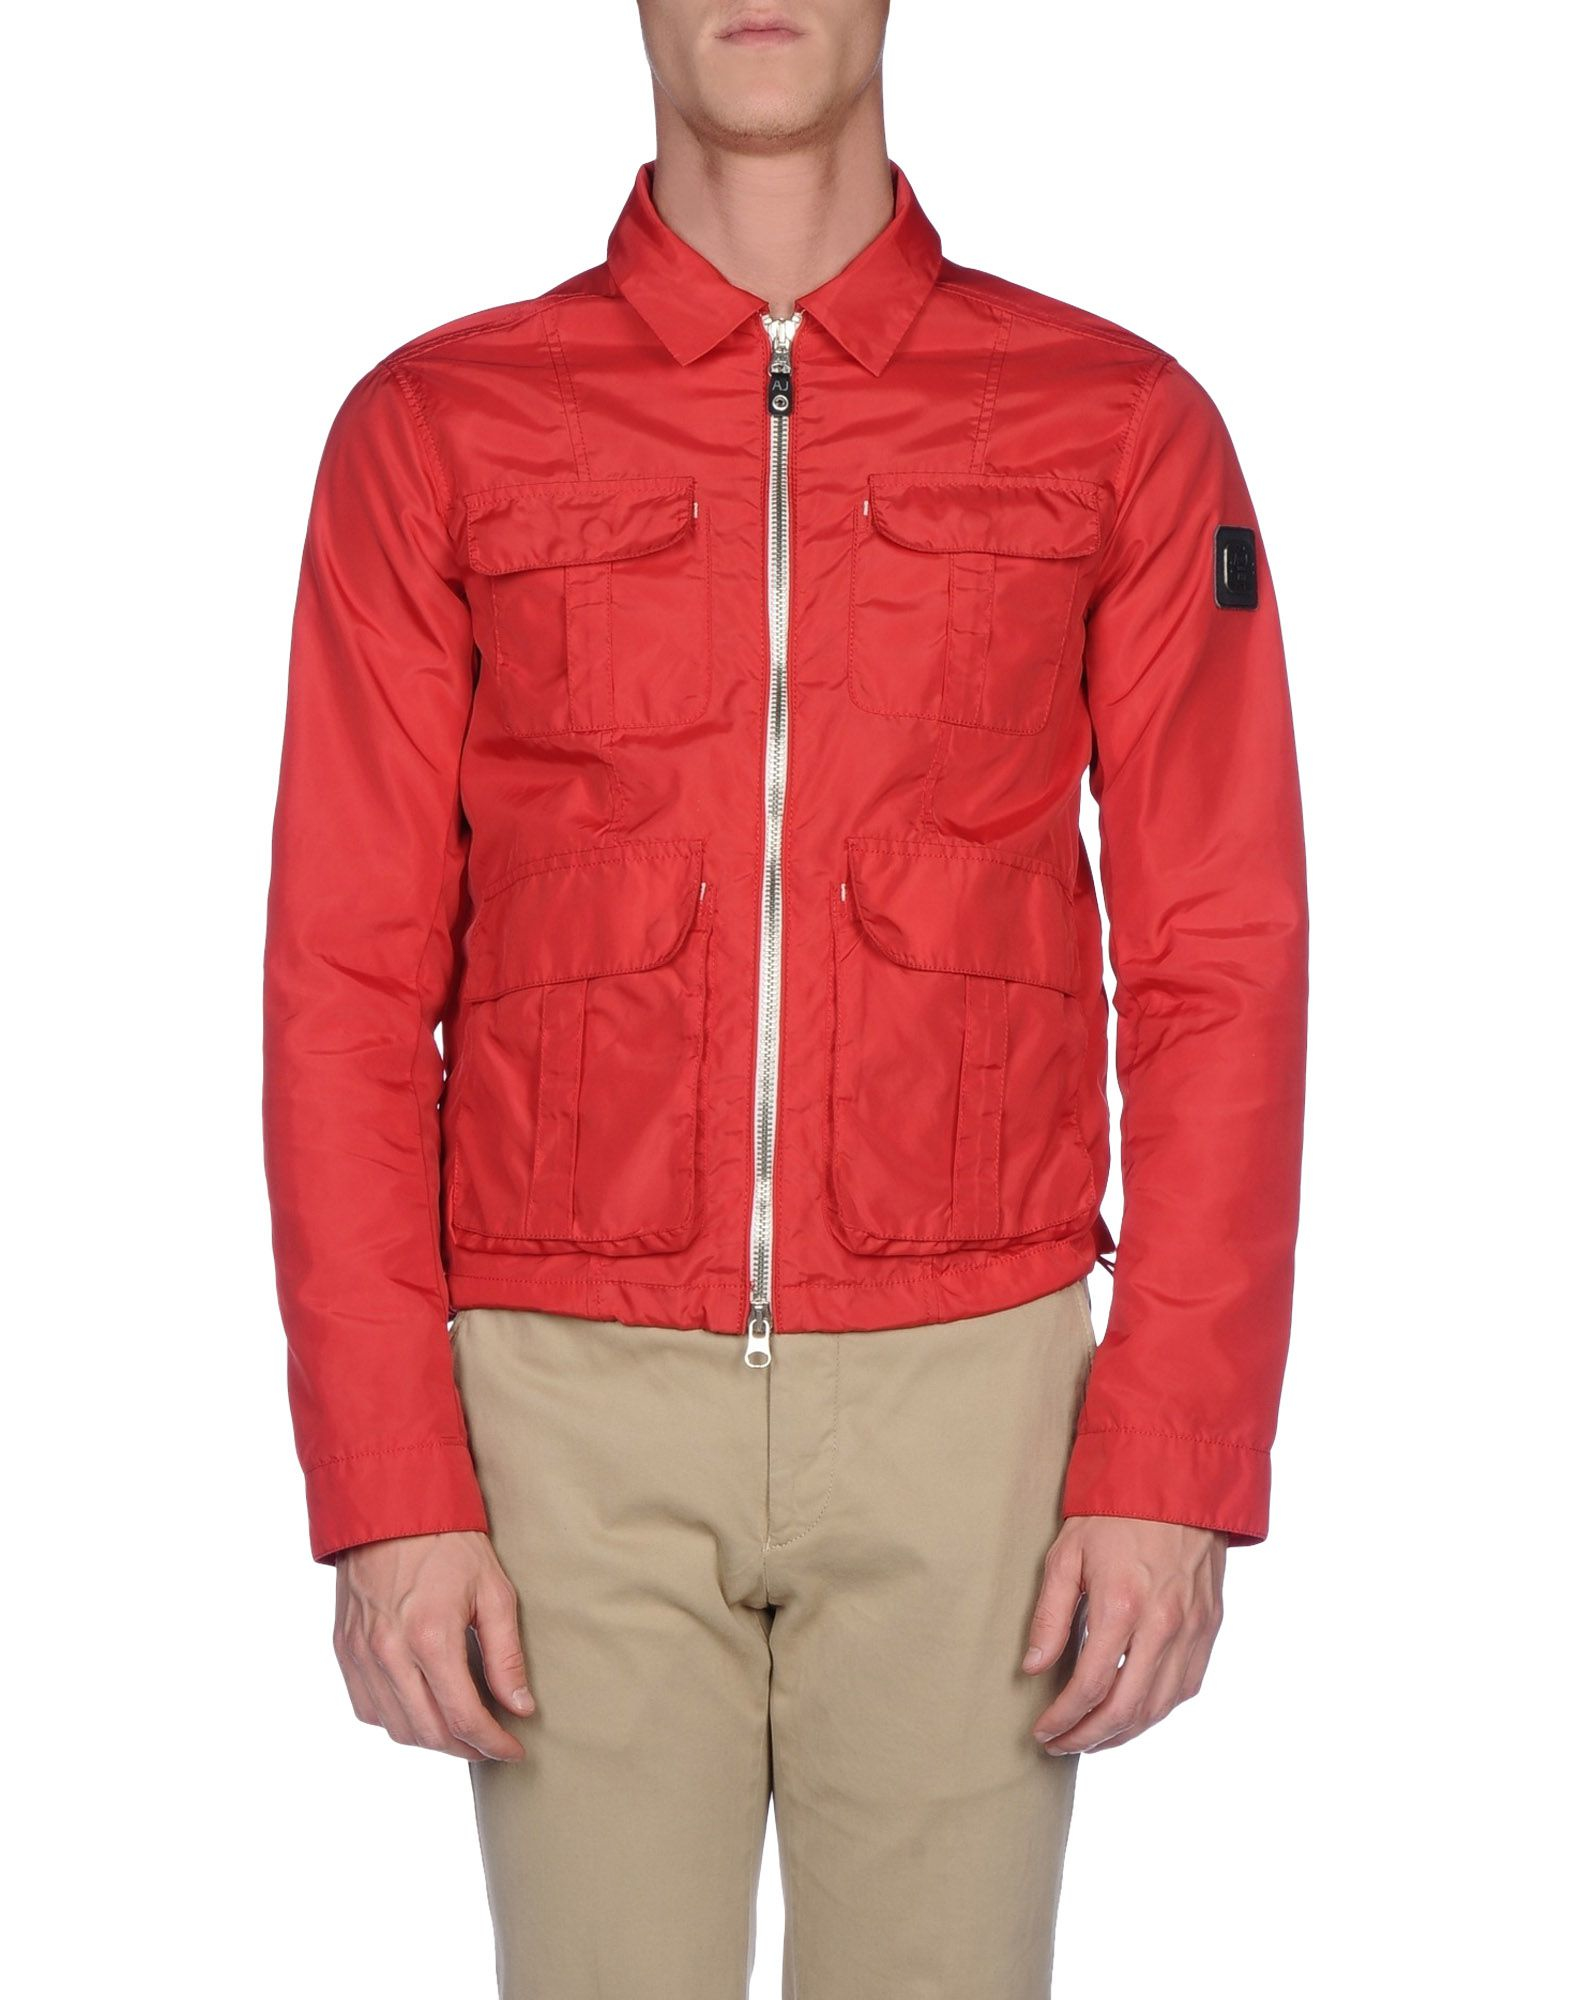 lyst armani jeans jacket in red for men. Black Bedroom Furniture Sets. Home Design Ideas